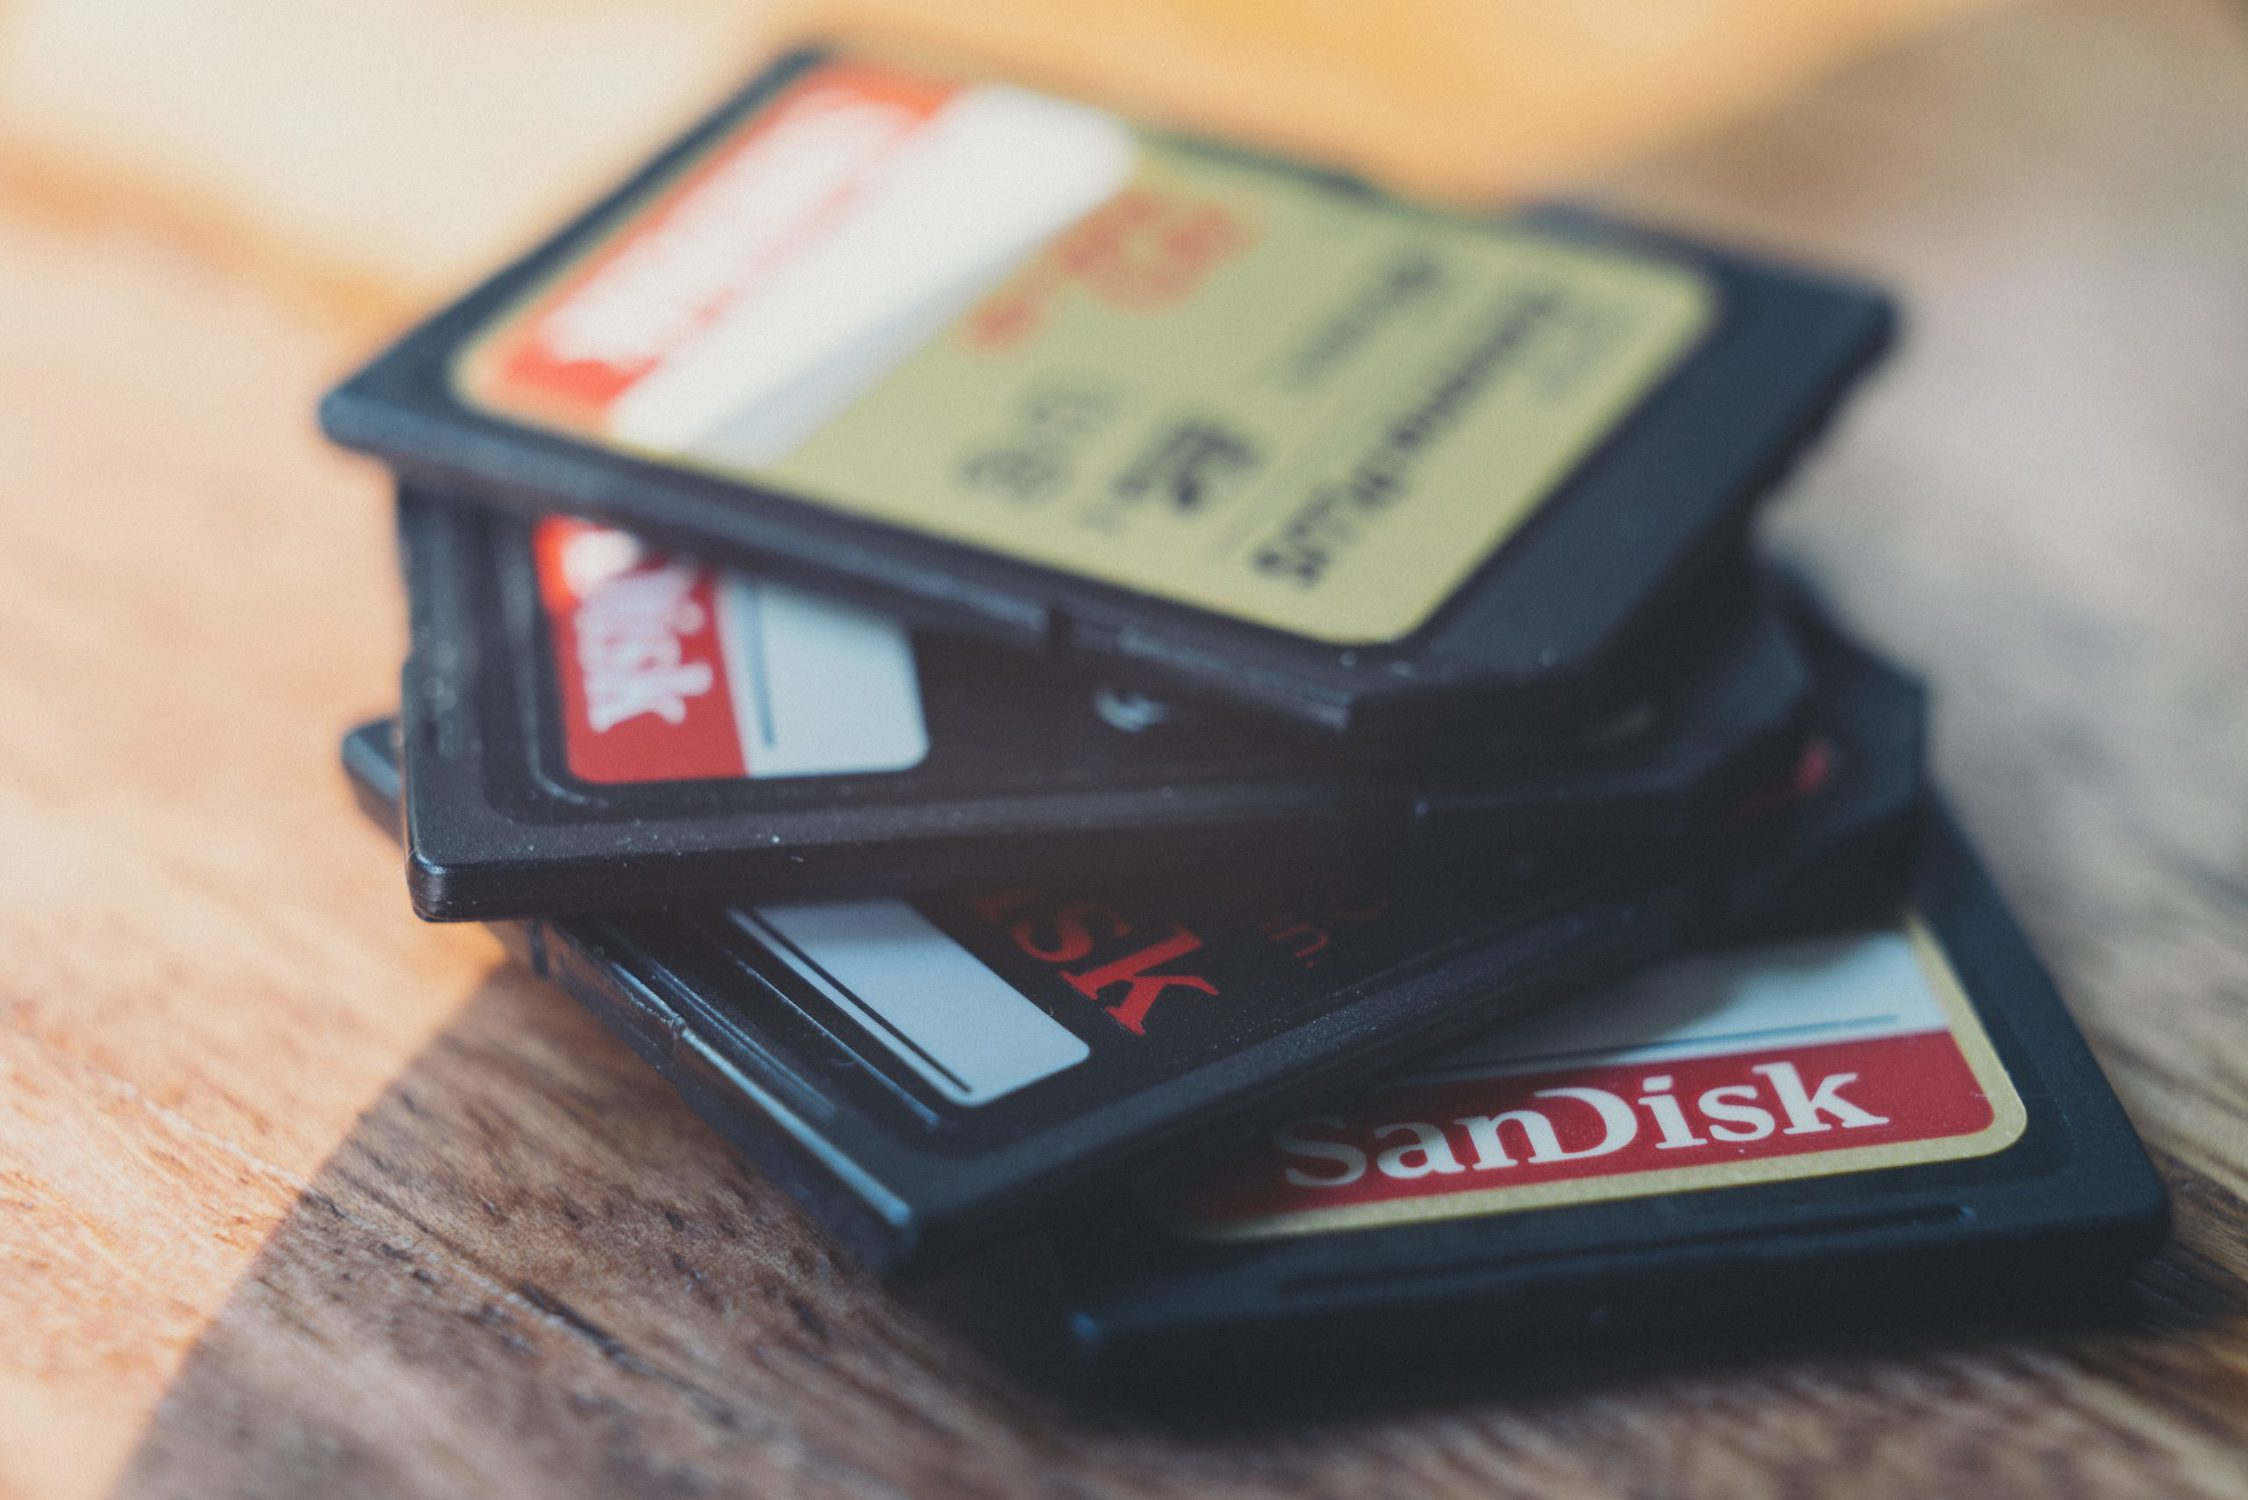 image of stack of sandisk sd cards